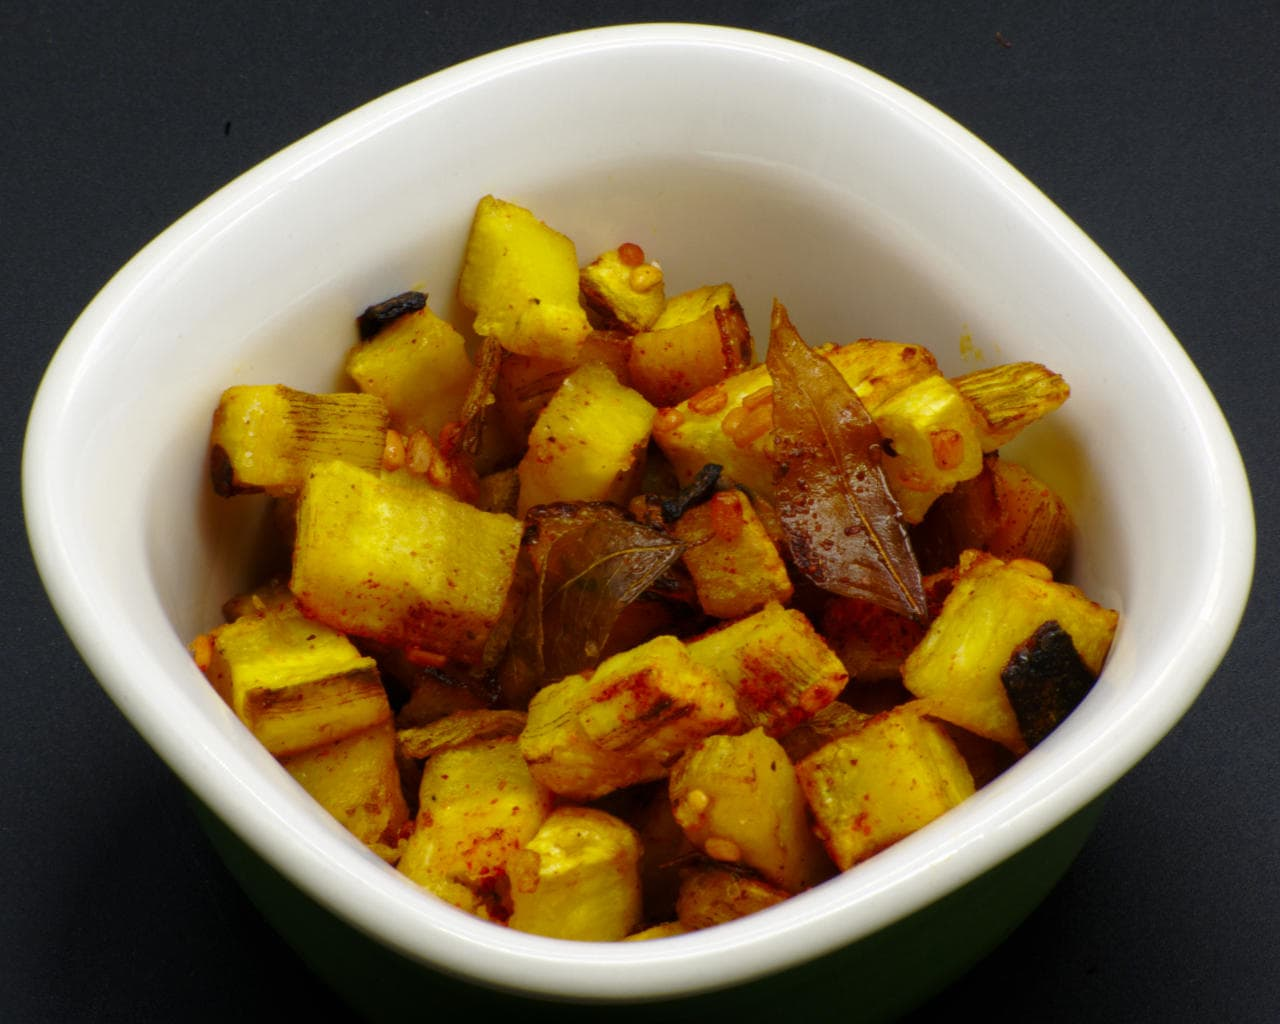 Stir-Fried Green Plantain With South Indian Spices Image